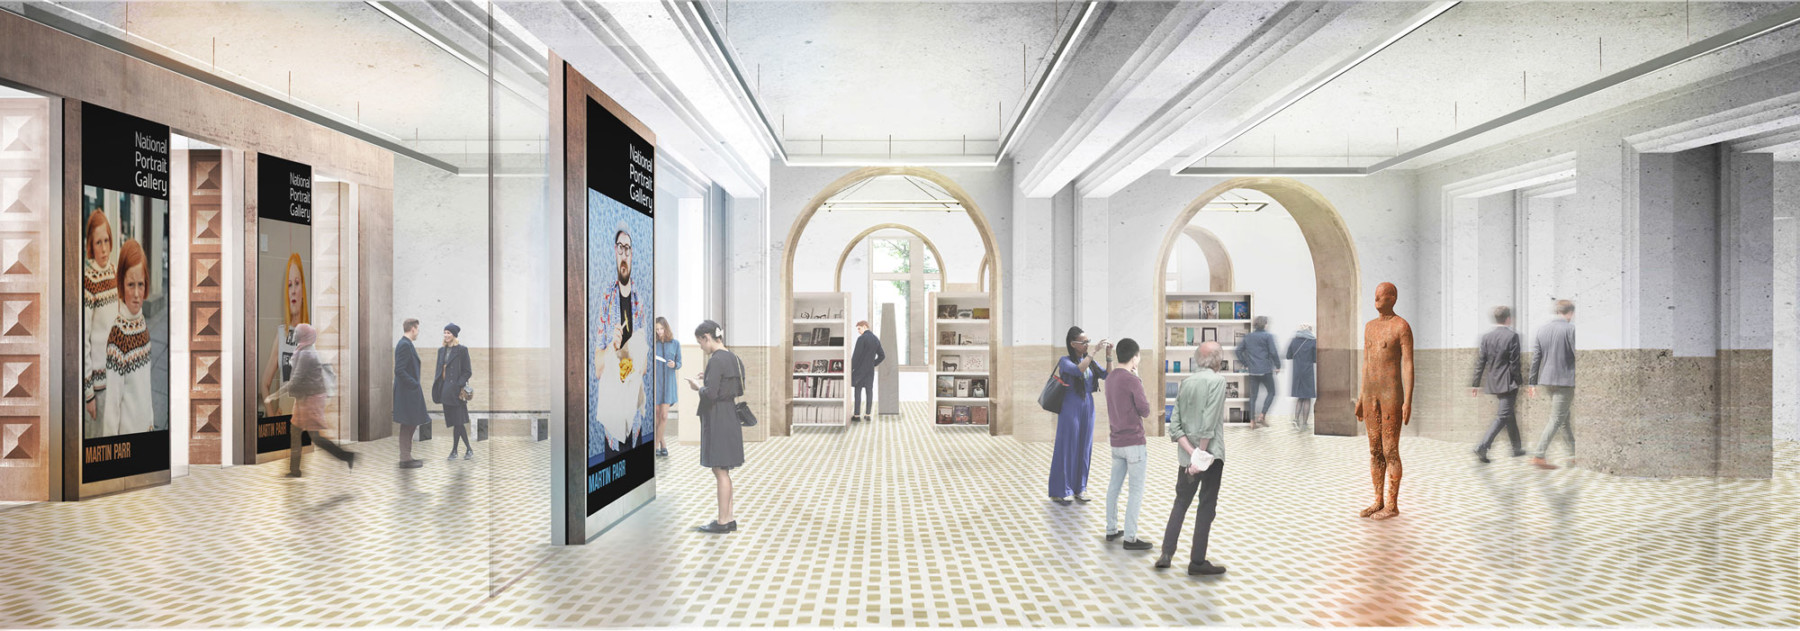 National-portrait-gallery new-entrance-hall-proposal Jamie-Fobert-Architects